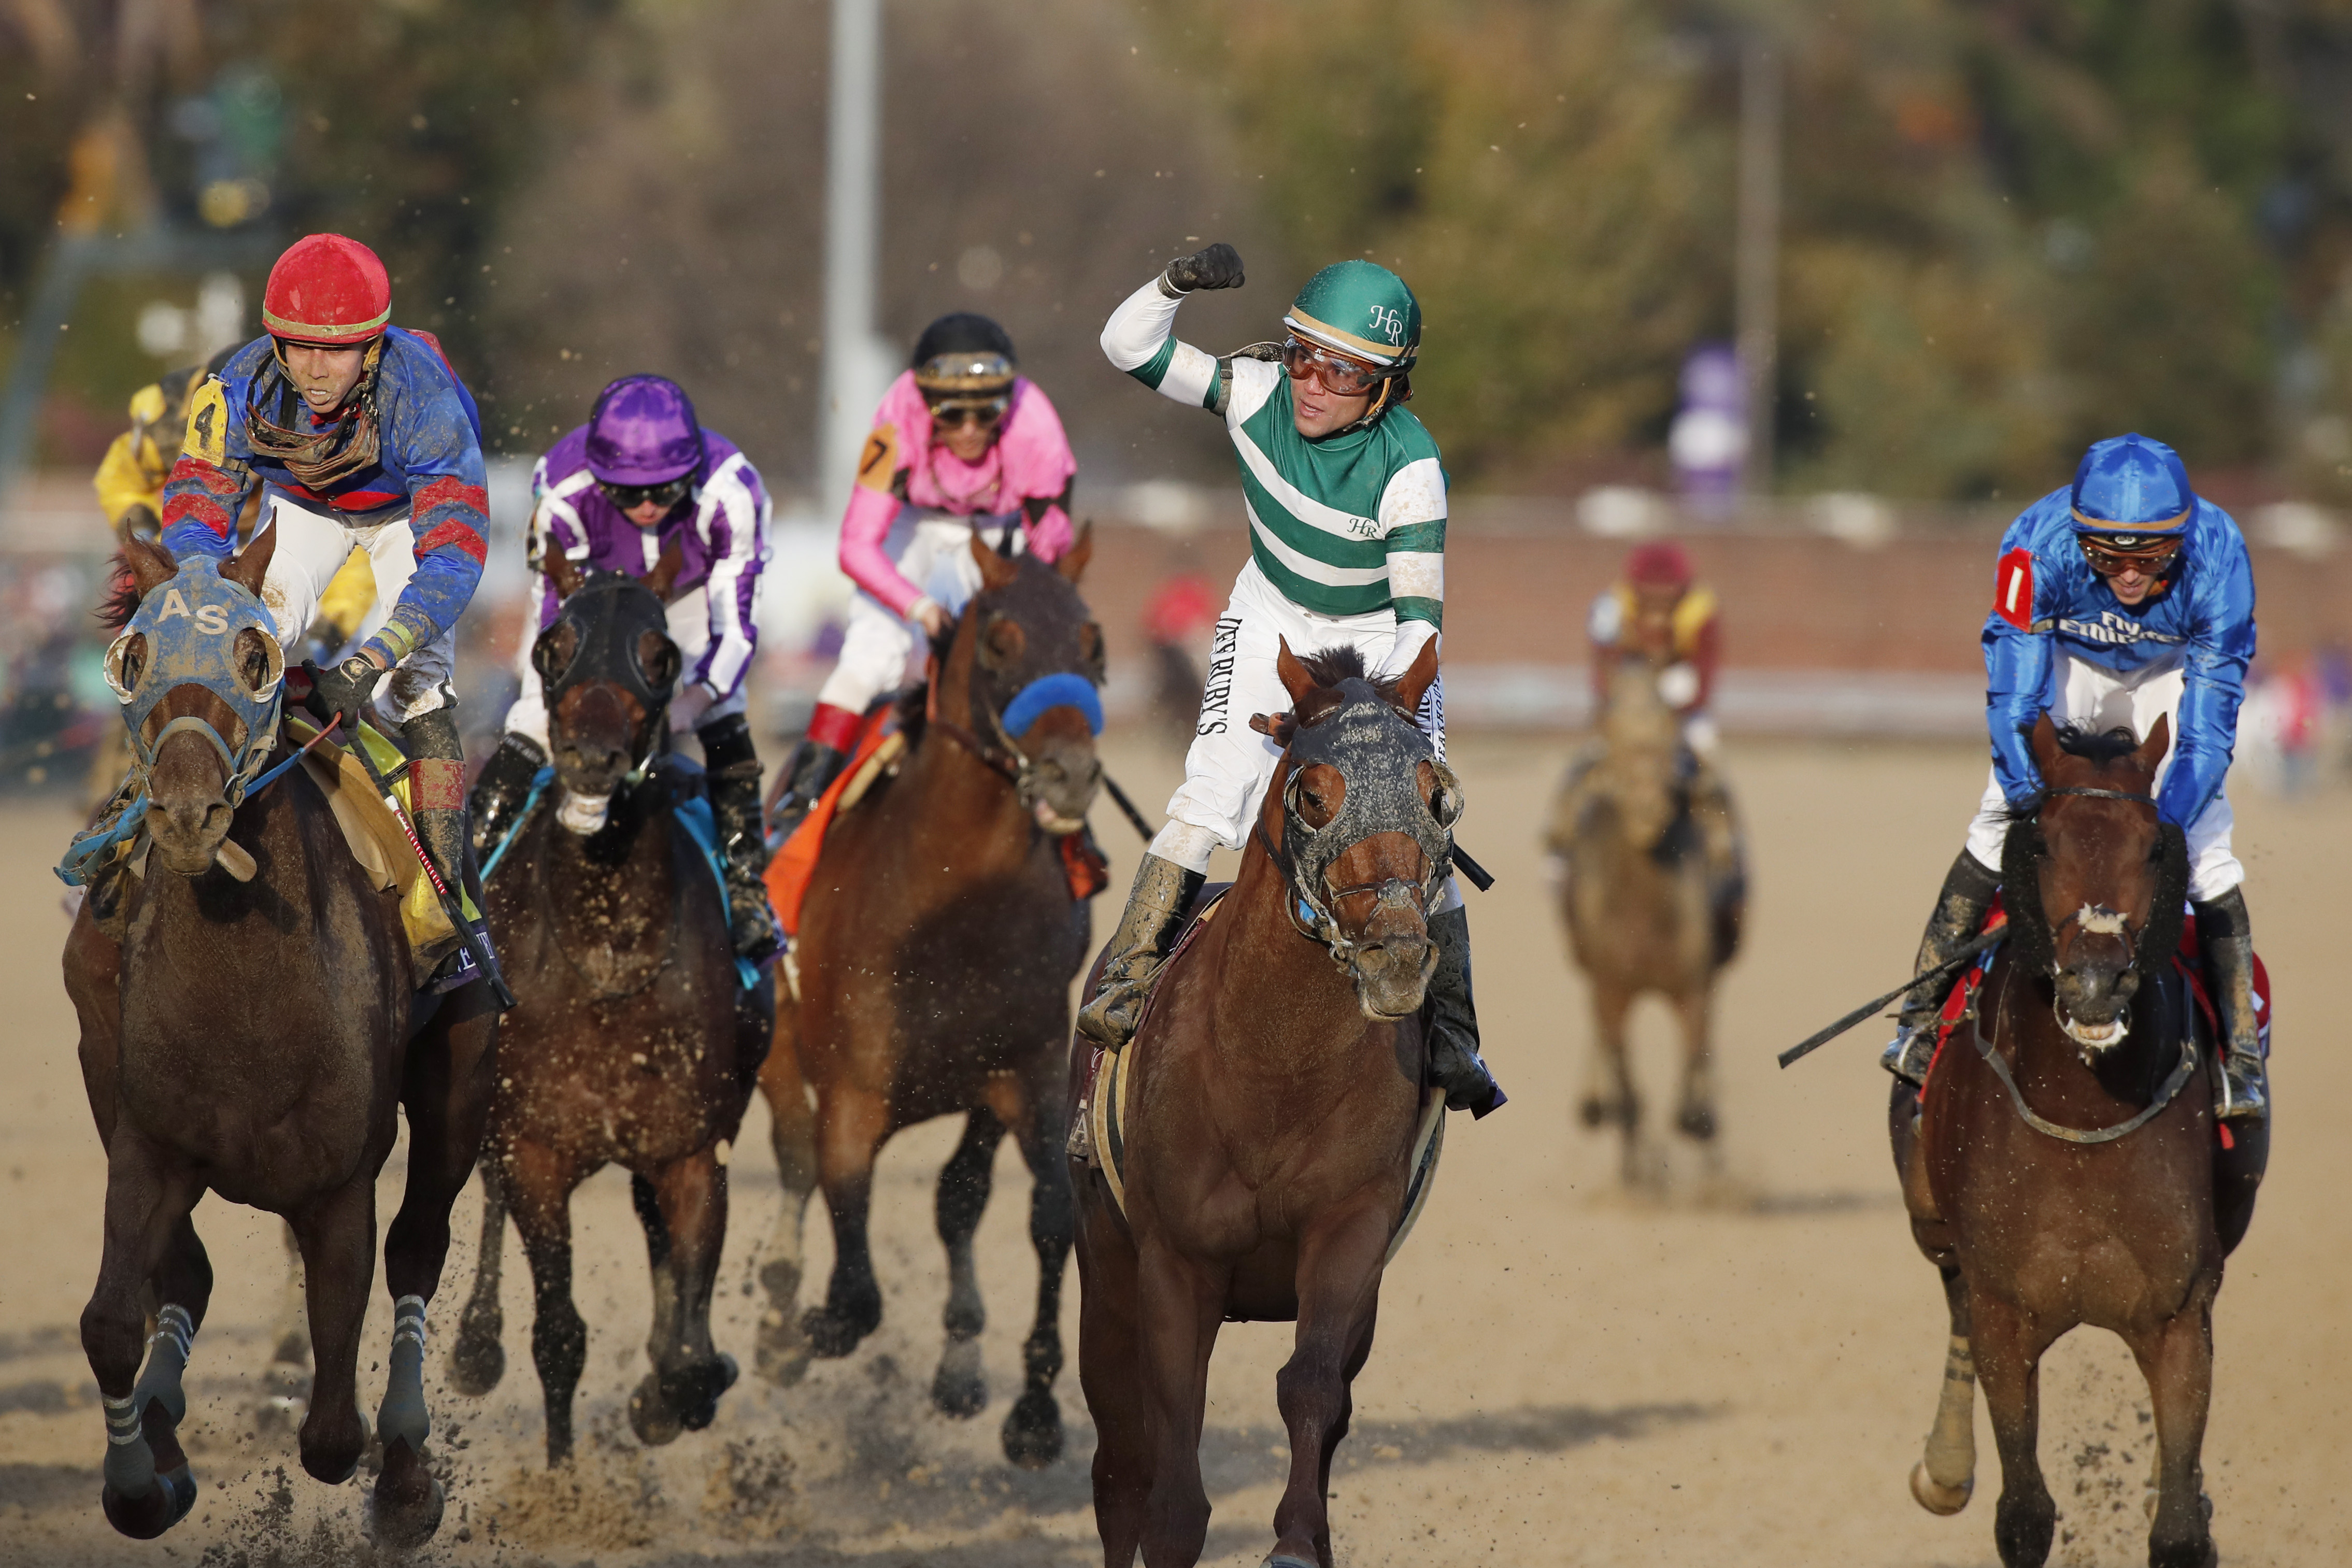 Horse Racing: 35th Breeders Cup World Championships